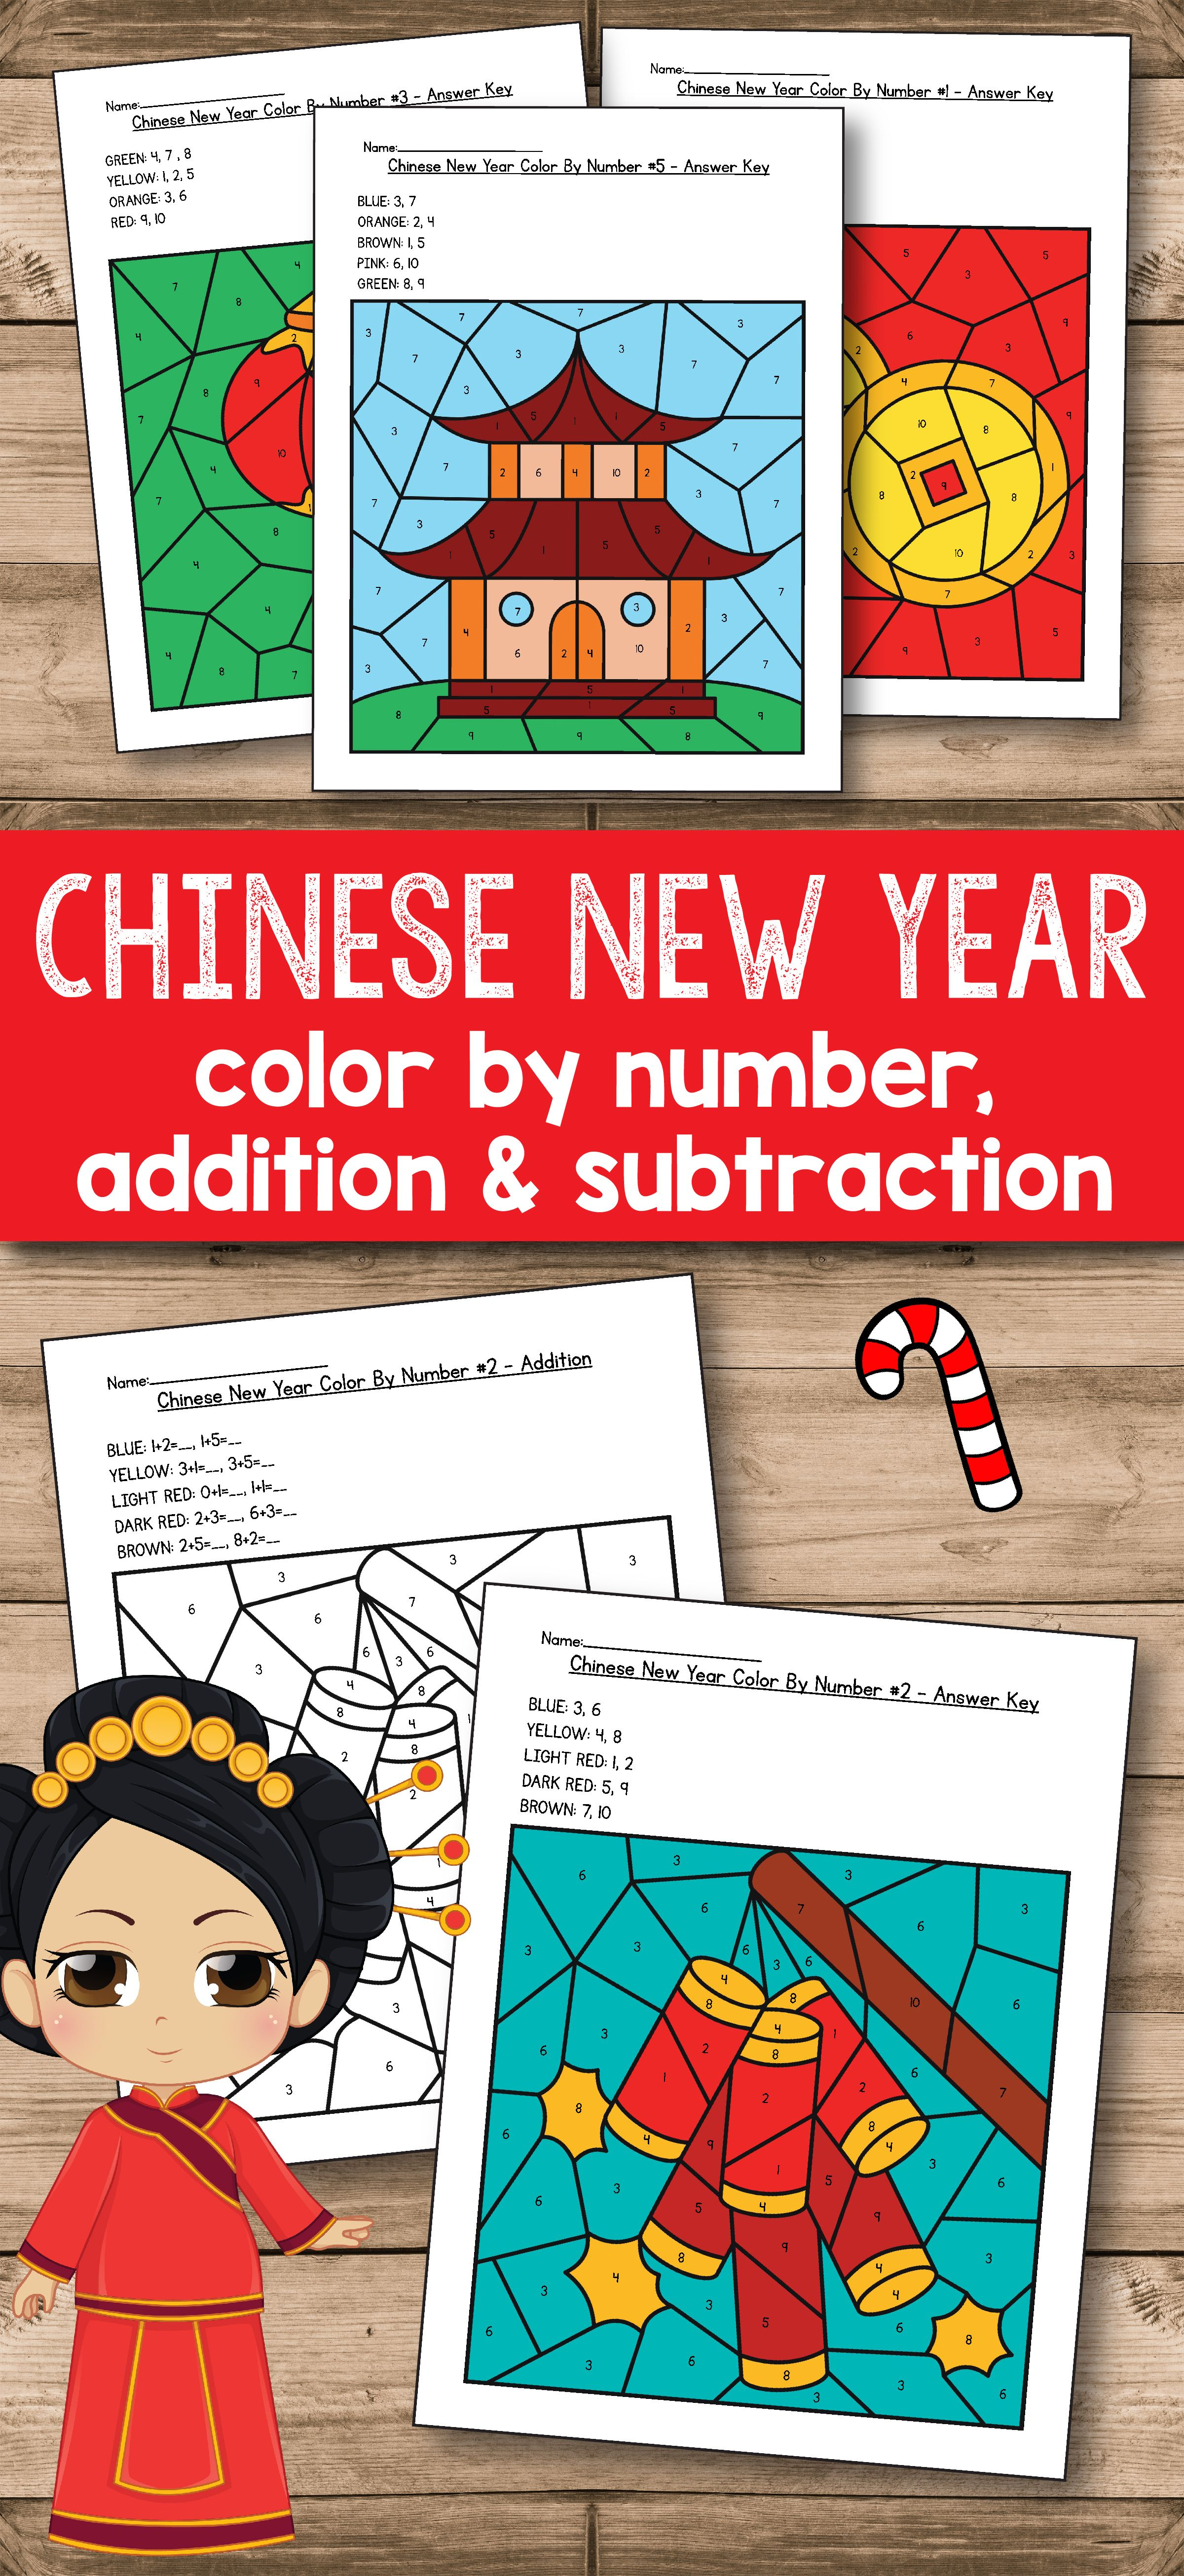 Chinese New Year 2018 Chinese New Year Worksheets Are The Perfect Activities For Preschool Kindergarten Chinese New Year China For Kids 1st Grade Activities [ 5223 x 2400 Pixel ]